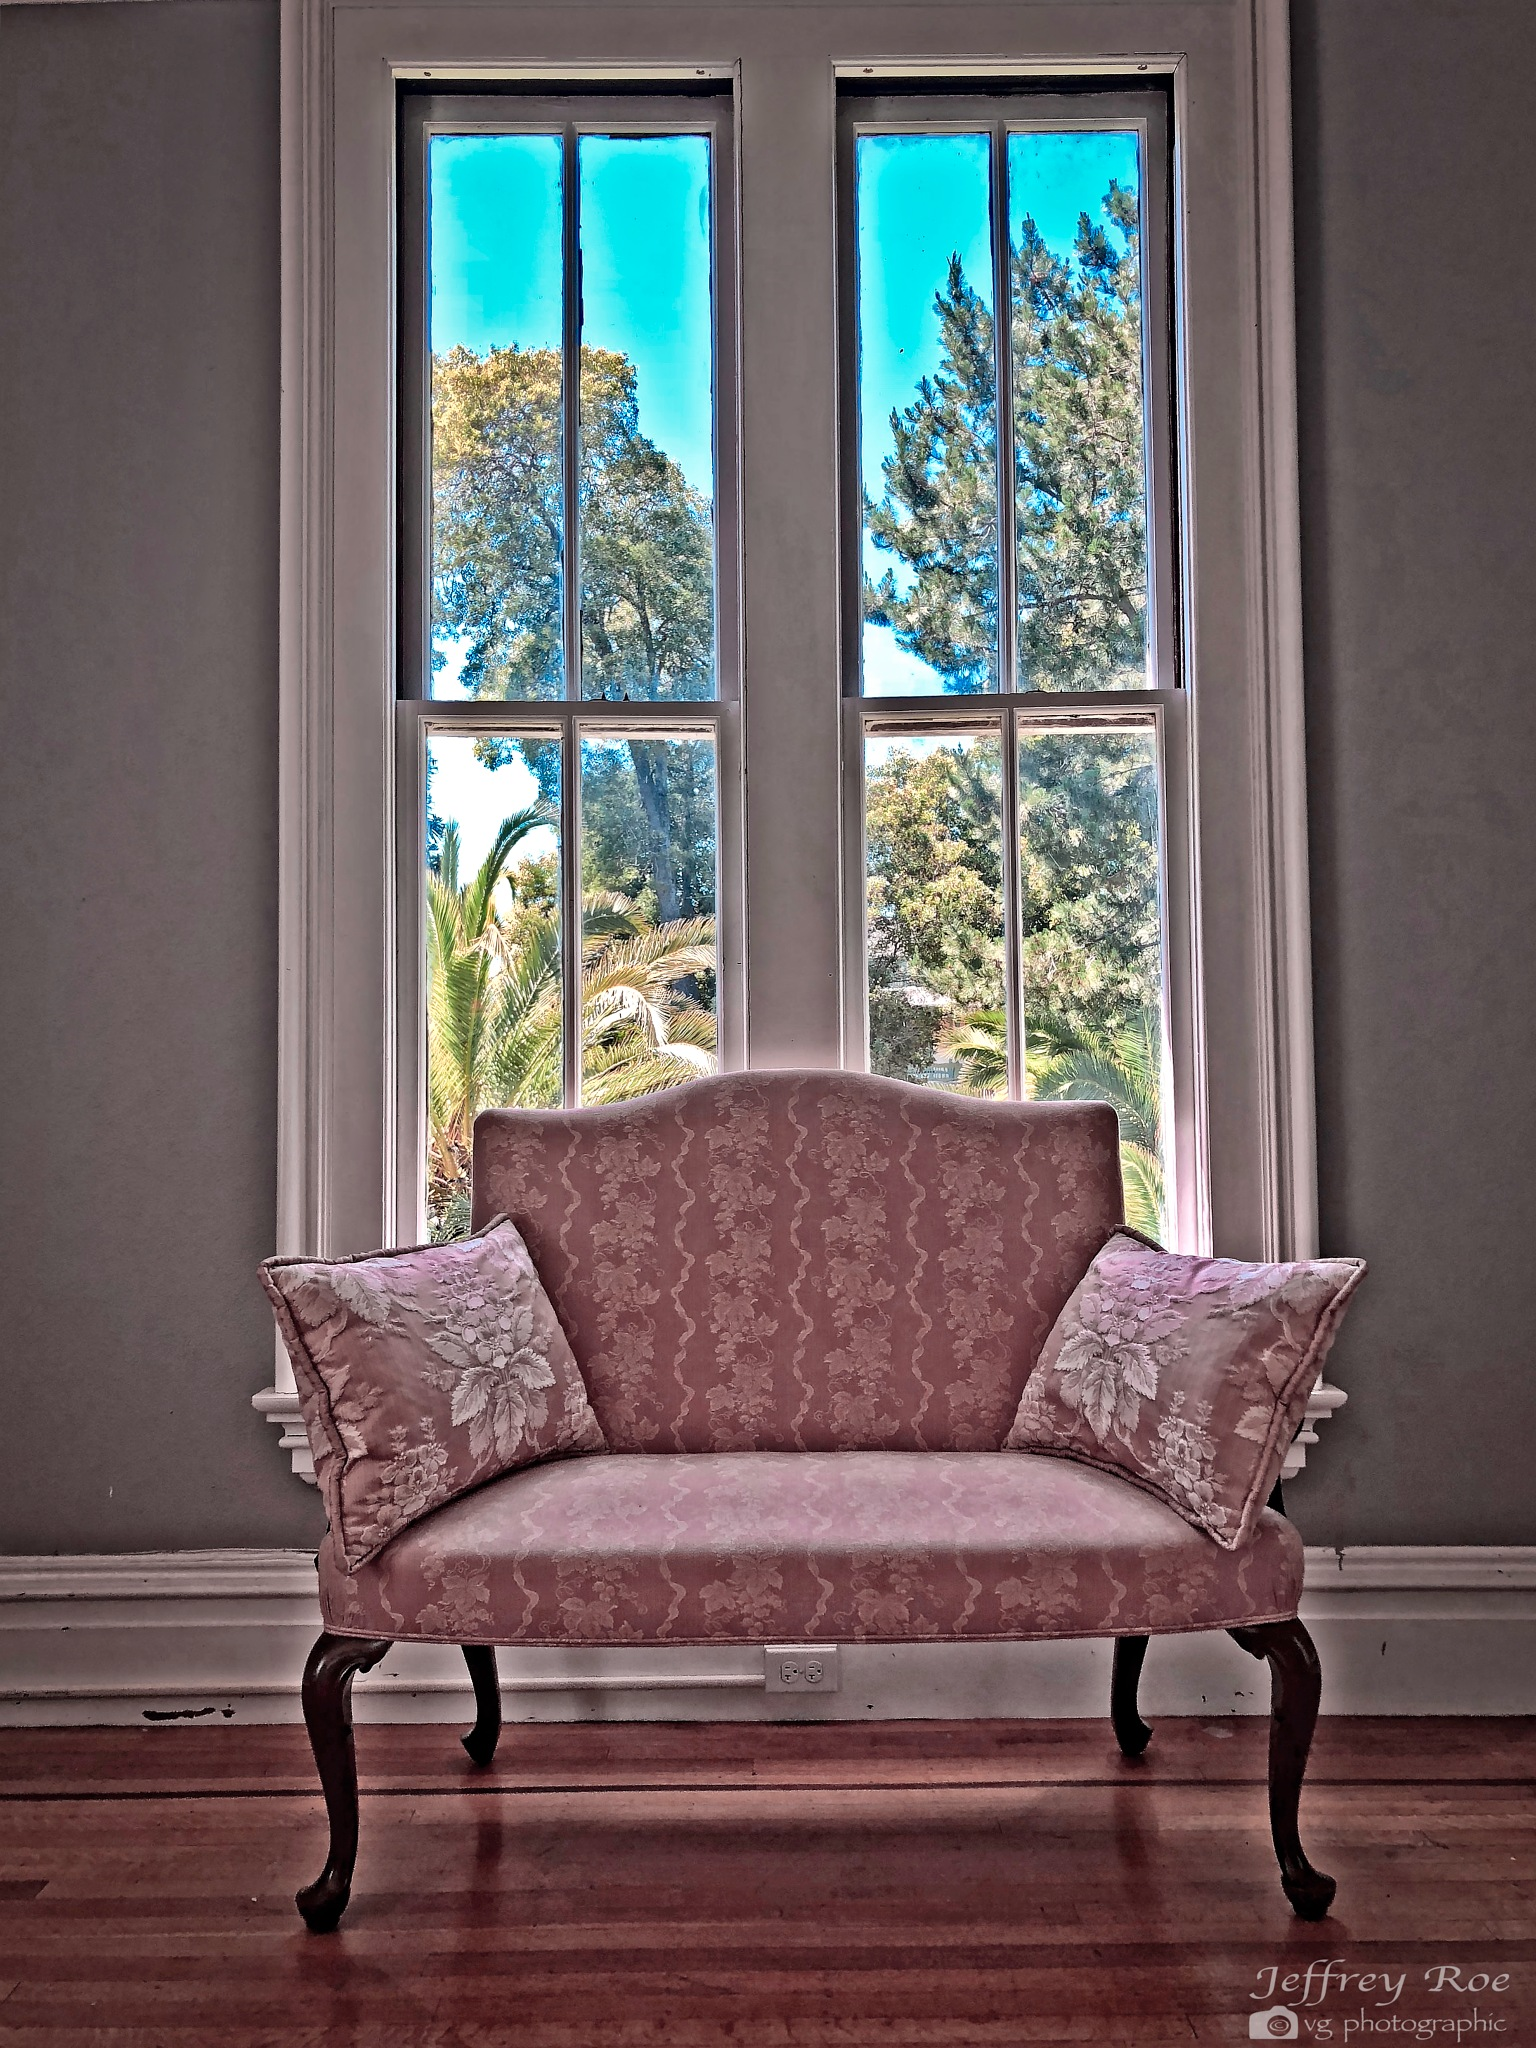 The Hot Seat (for lovers) by Jeffrey Roe